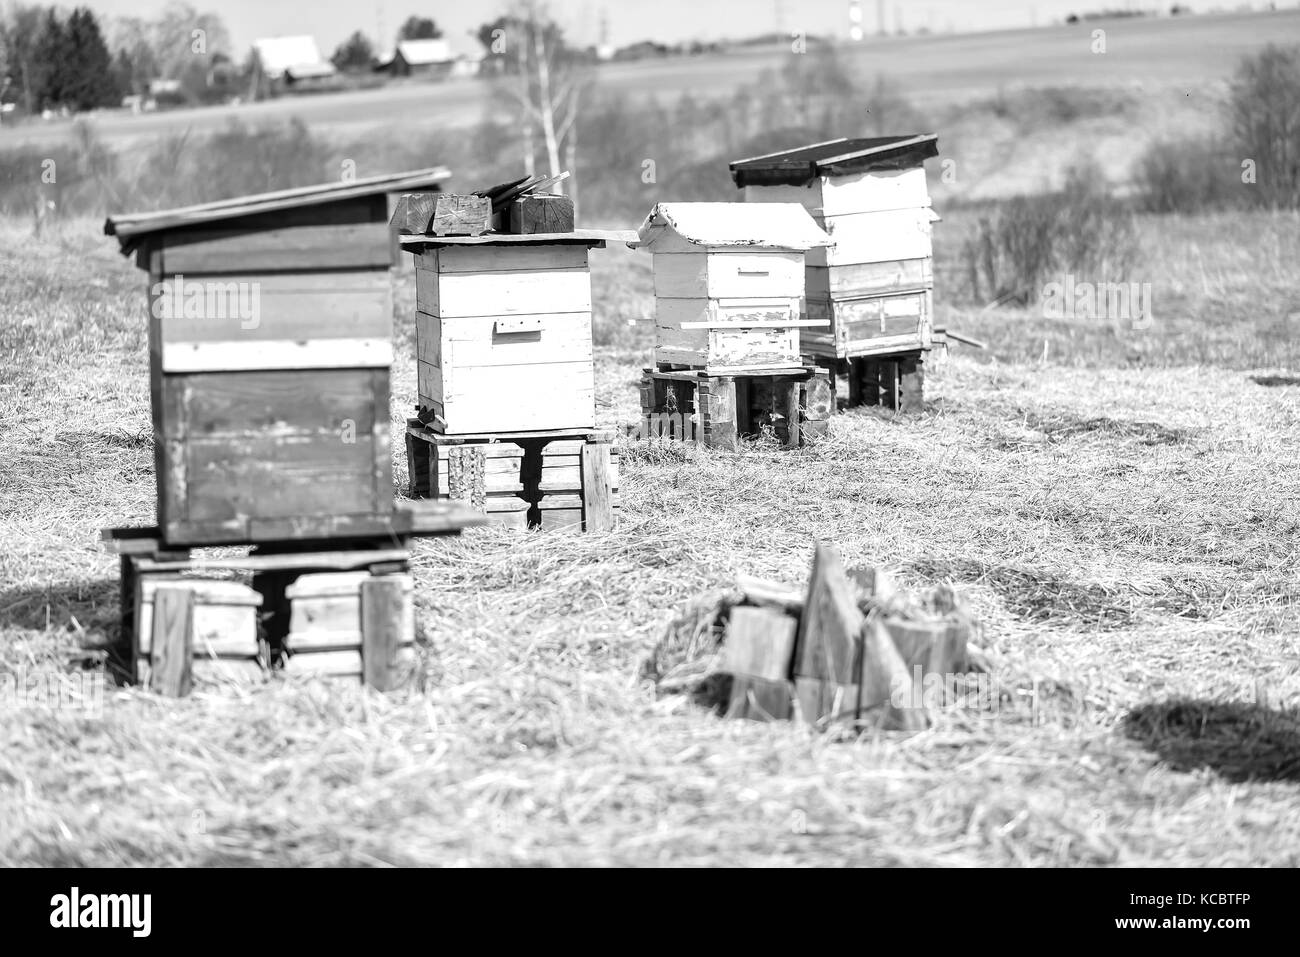 Bee hive standing in field  - Stock Image